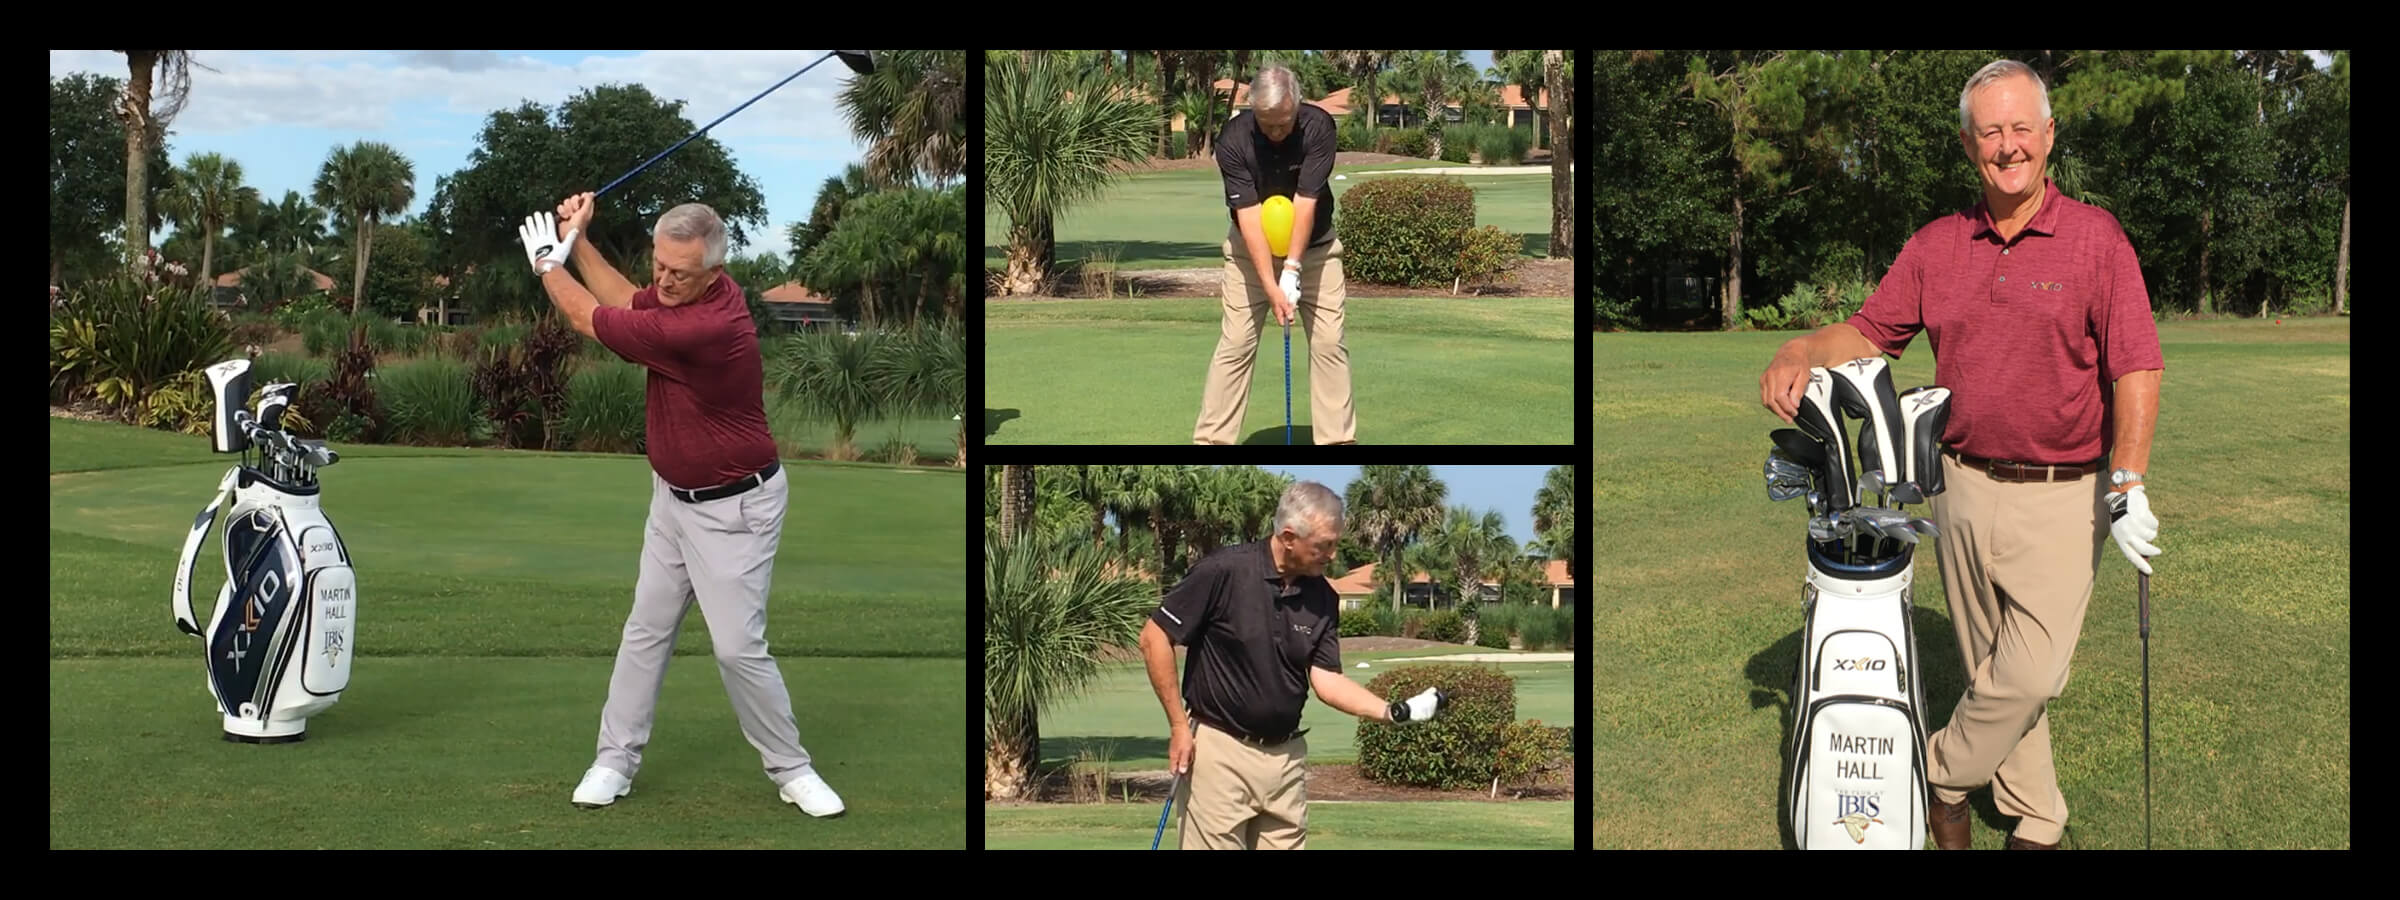 Golf Tips with Martin Hall